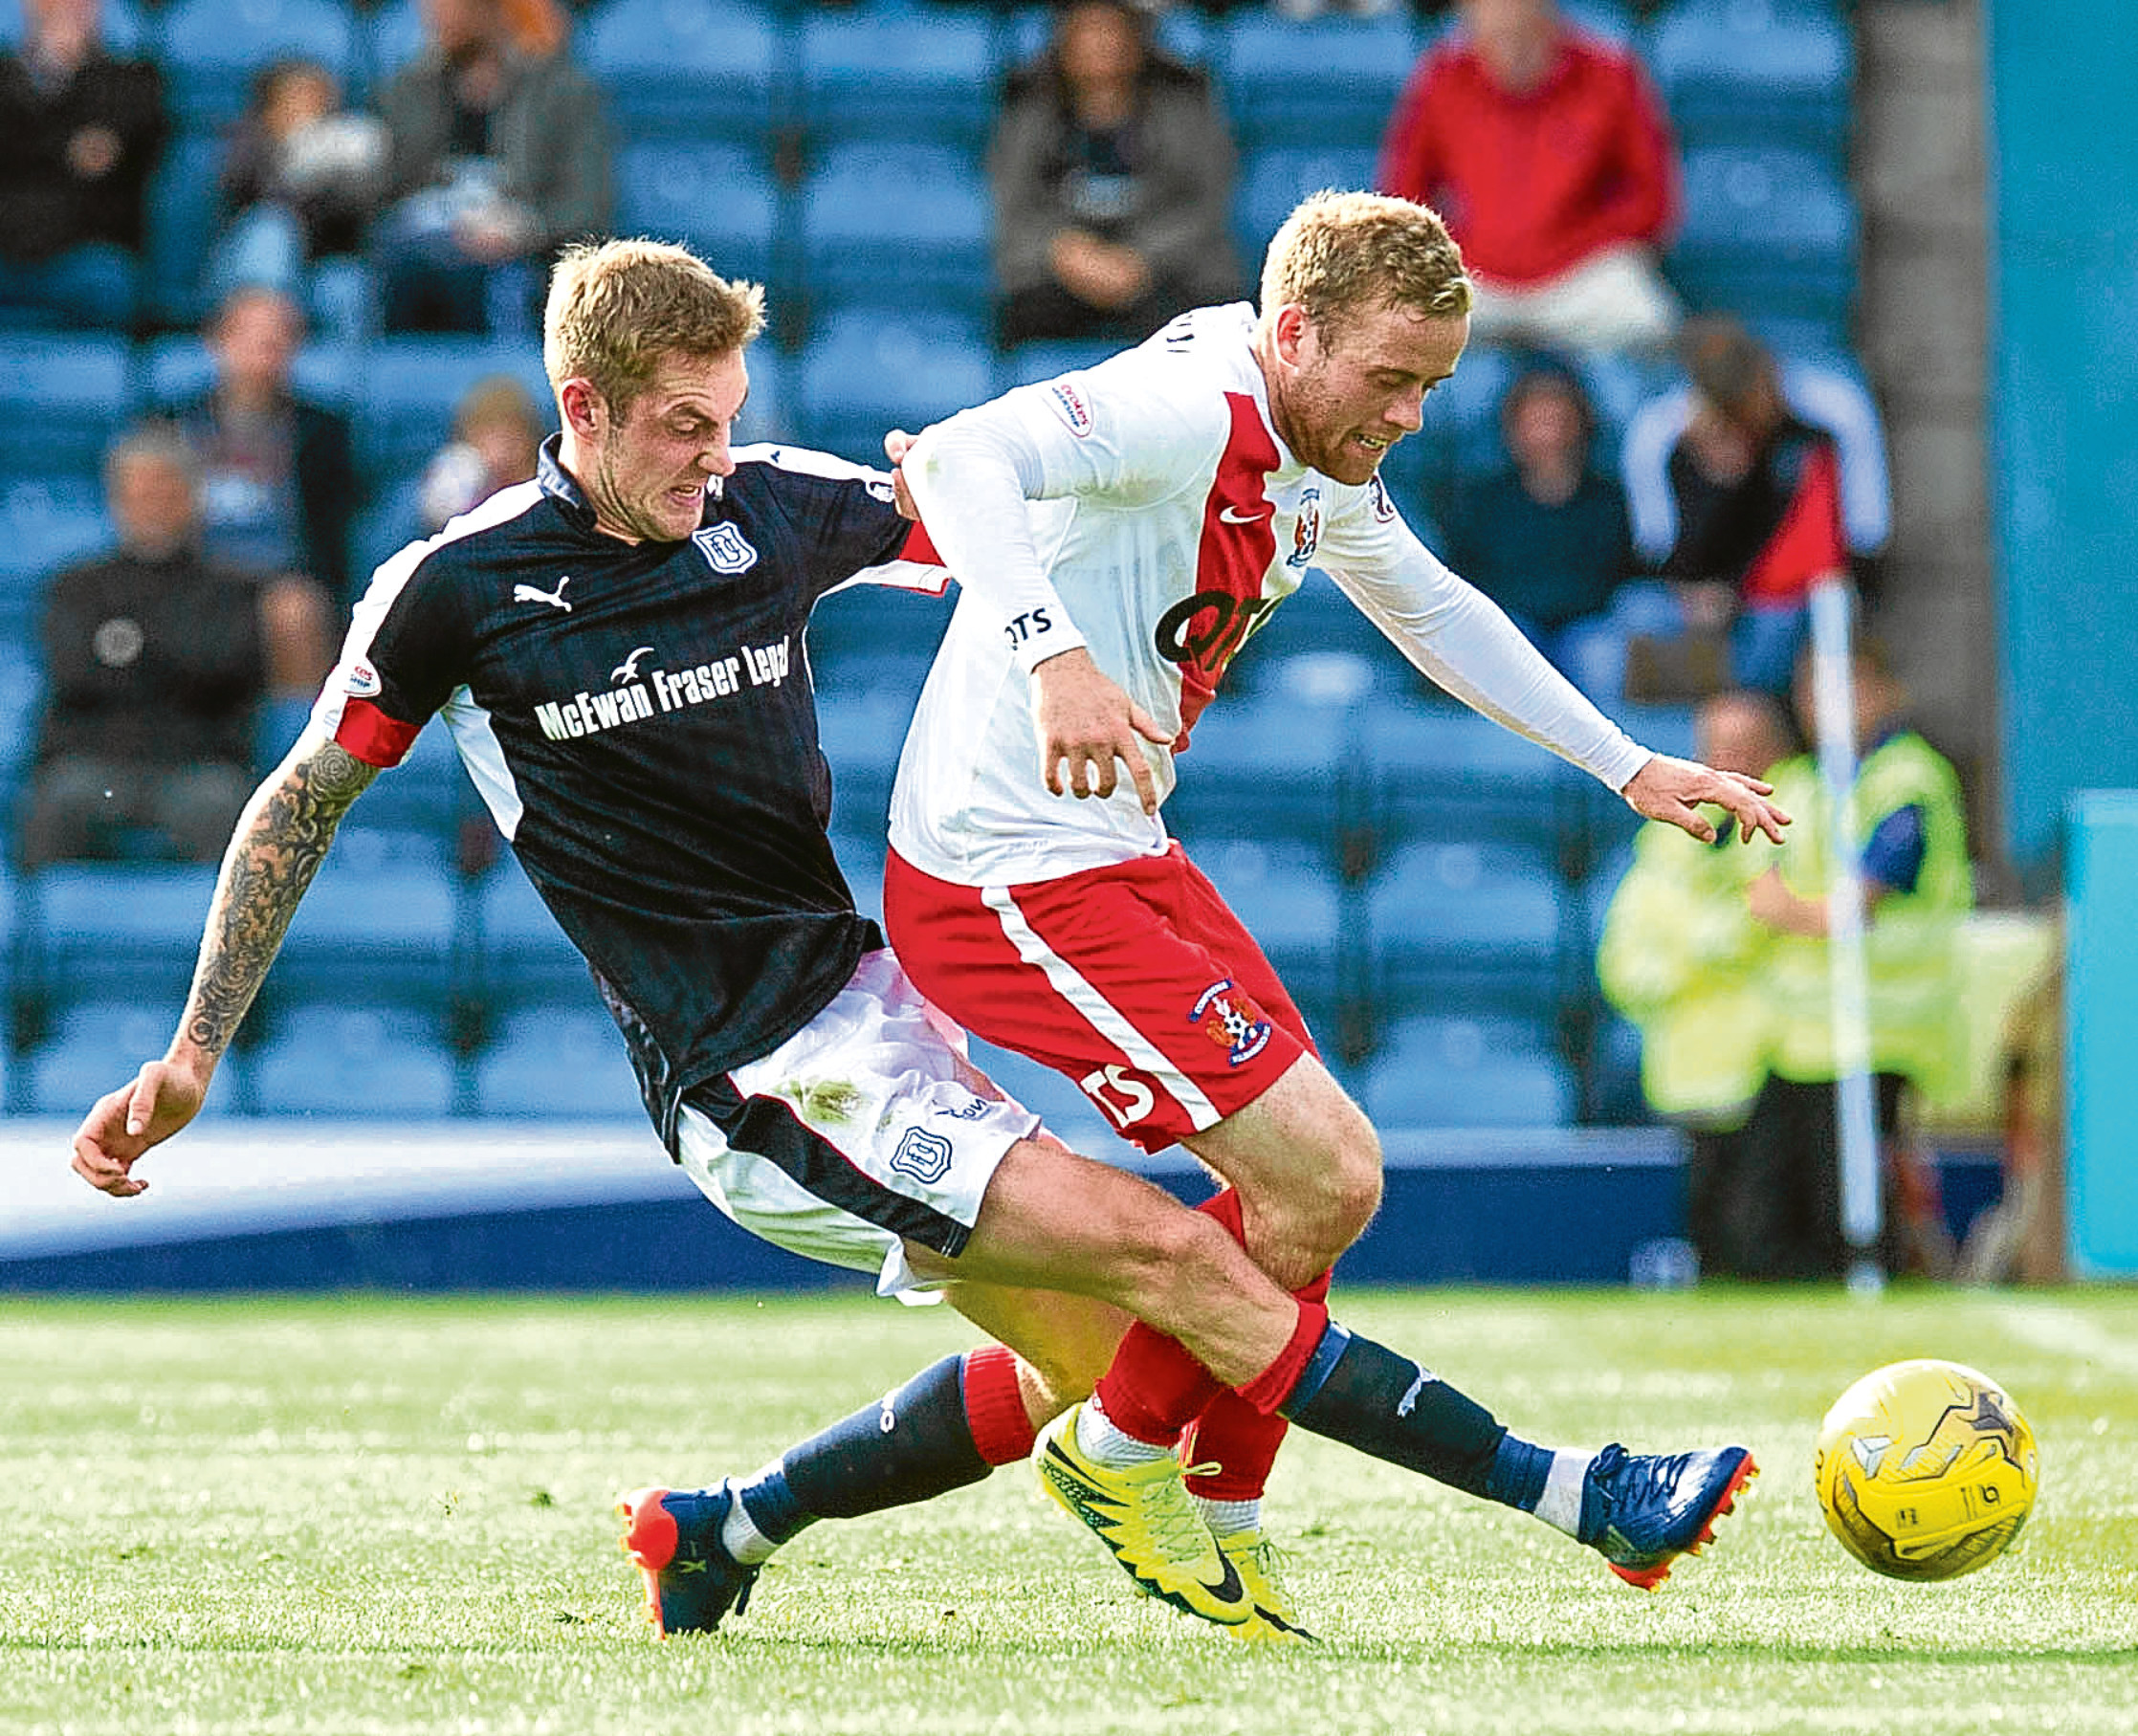 Dundee's Kevin Holt battles for the ball against Kilmarnock's Rory McKenzie.